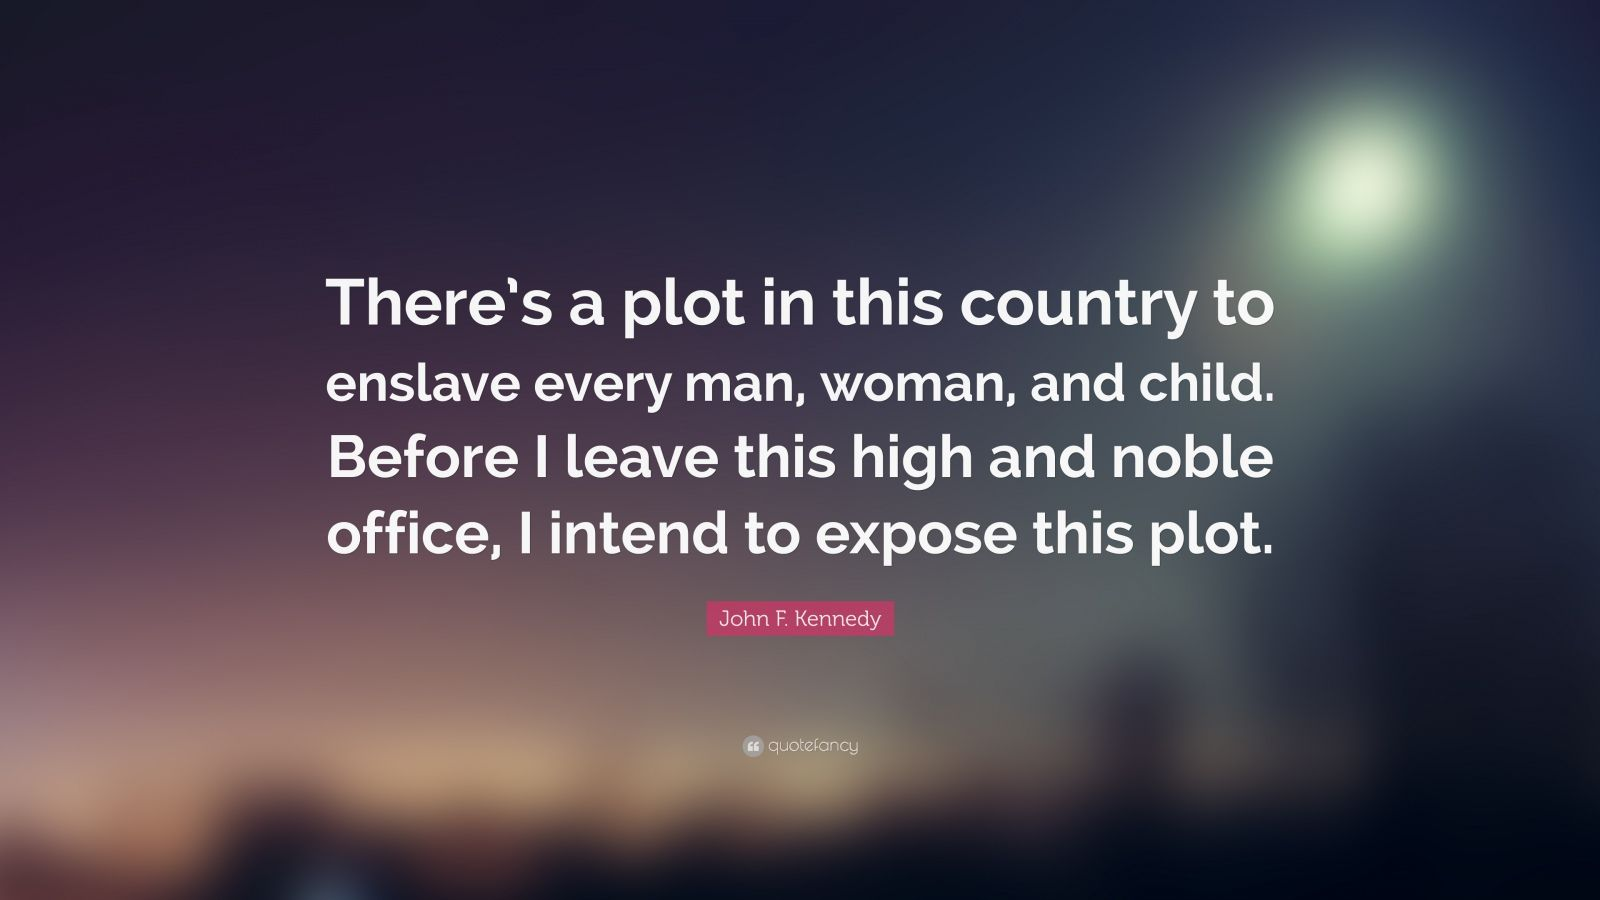 """John F. Kennedy Quote: """"There's a plot in this country to enslave every man, woman, and child. Before I leave this high and noble office, I intend to expose this plot."""""""